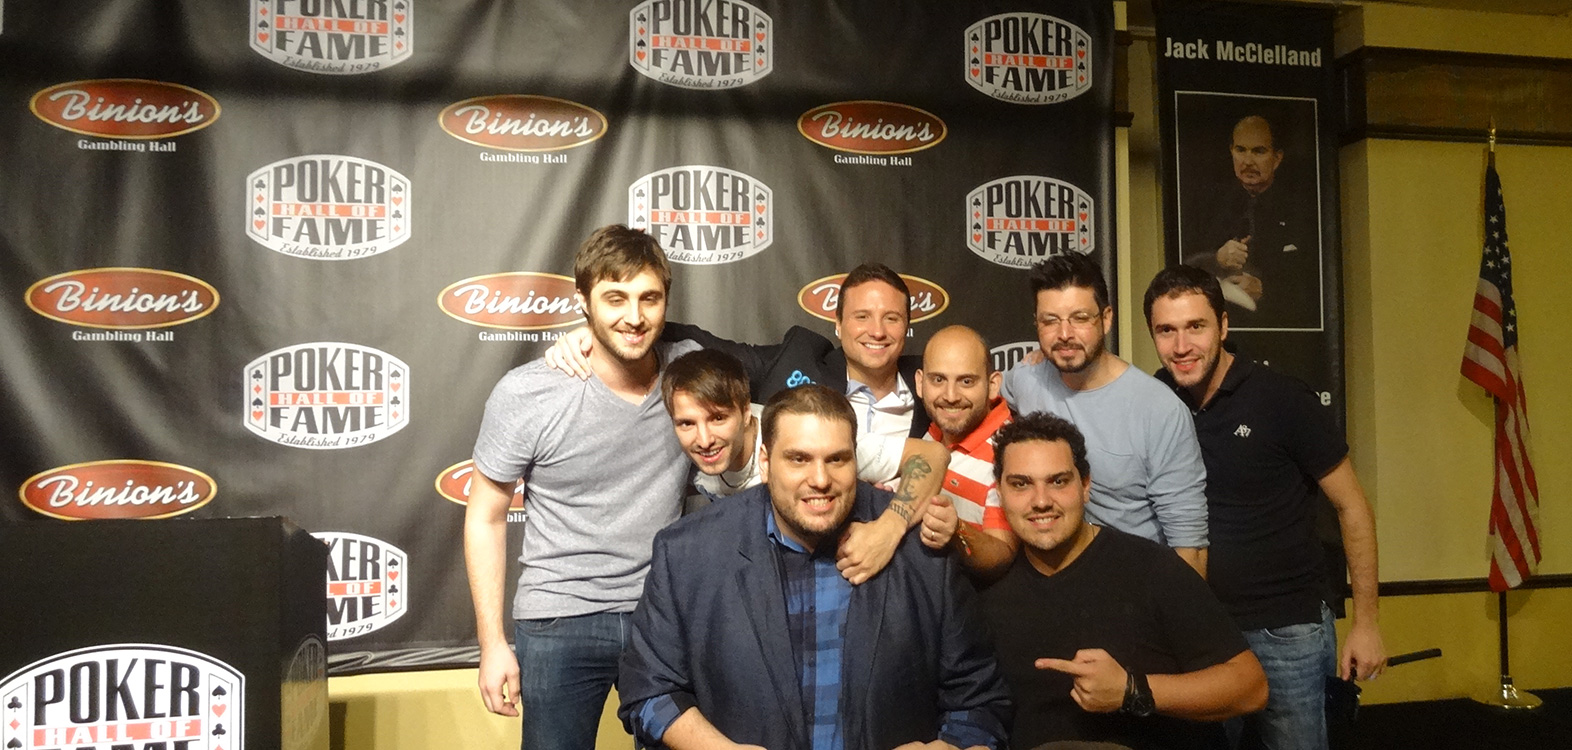 Bruno-Politano-November-Niner-and-friends,-2014-Poker-Hall-of-Fame,-Las-Vegas